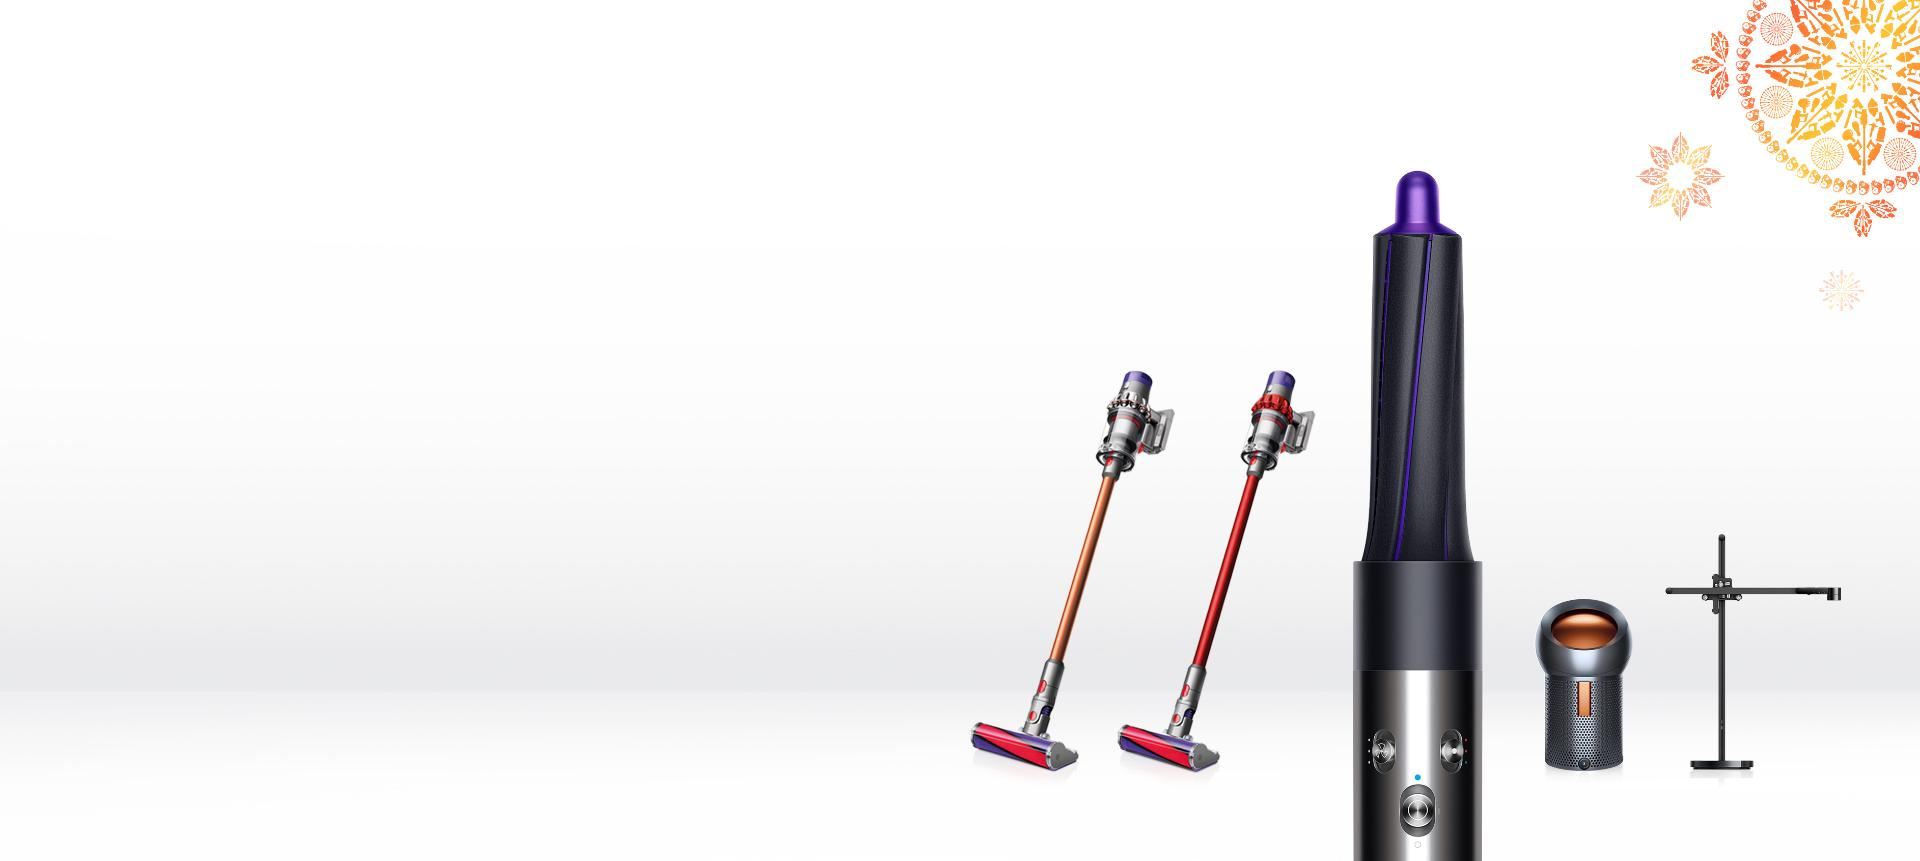 Light up this festive season with Dyson technology